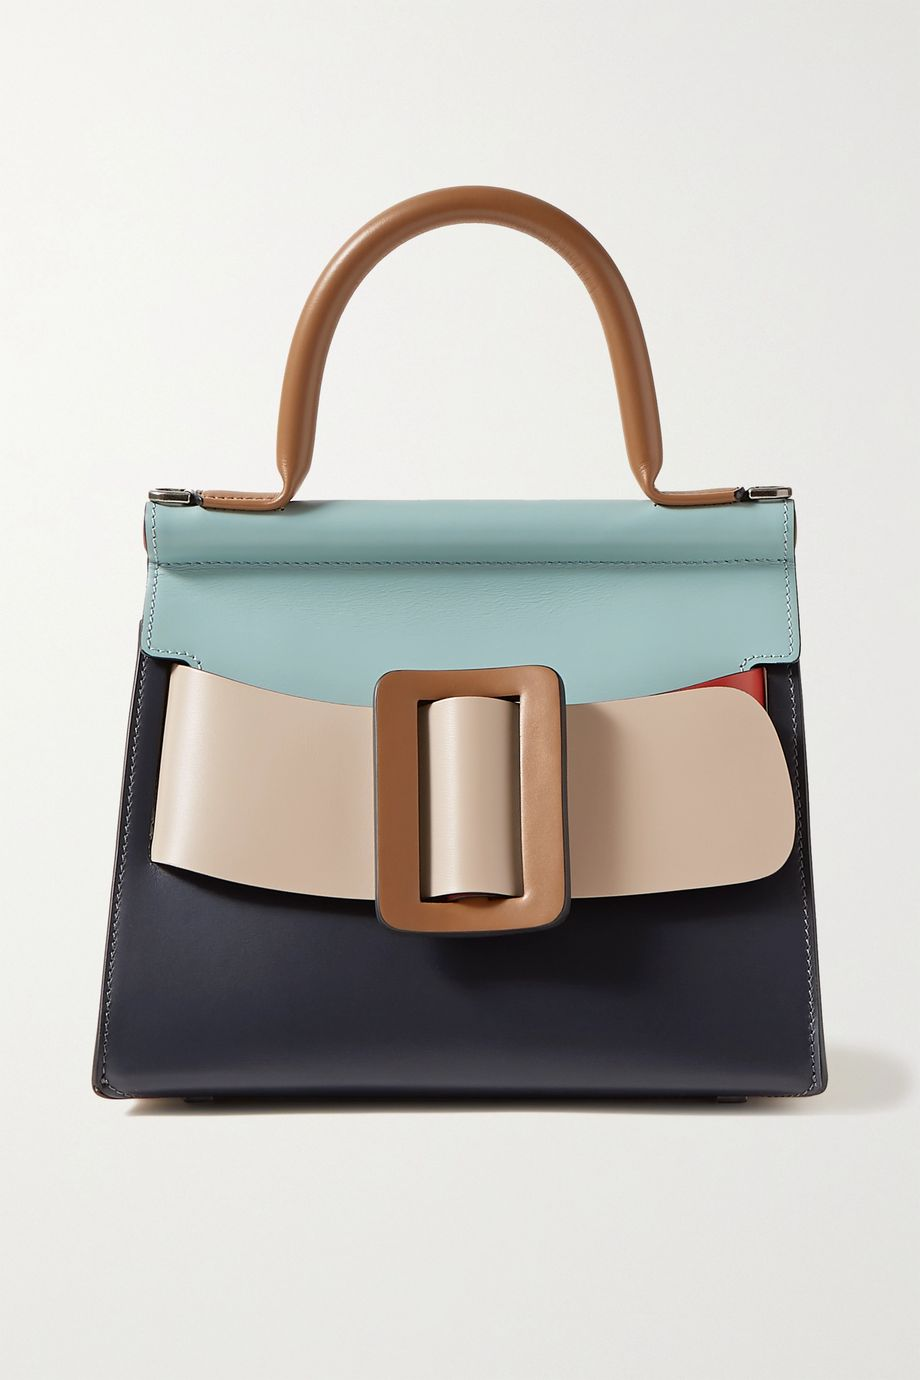 BOYY Karl 24 buckled color-block leather tote